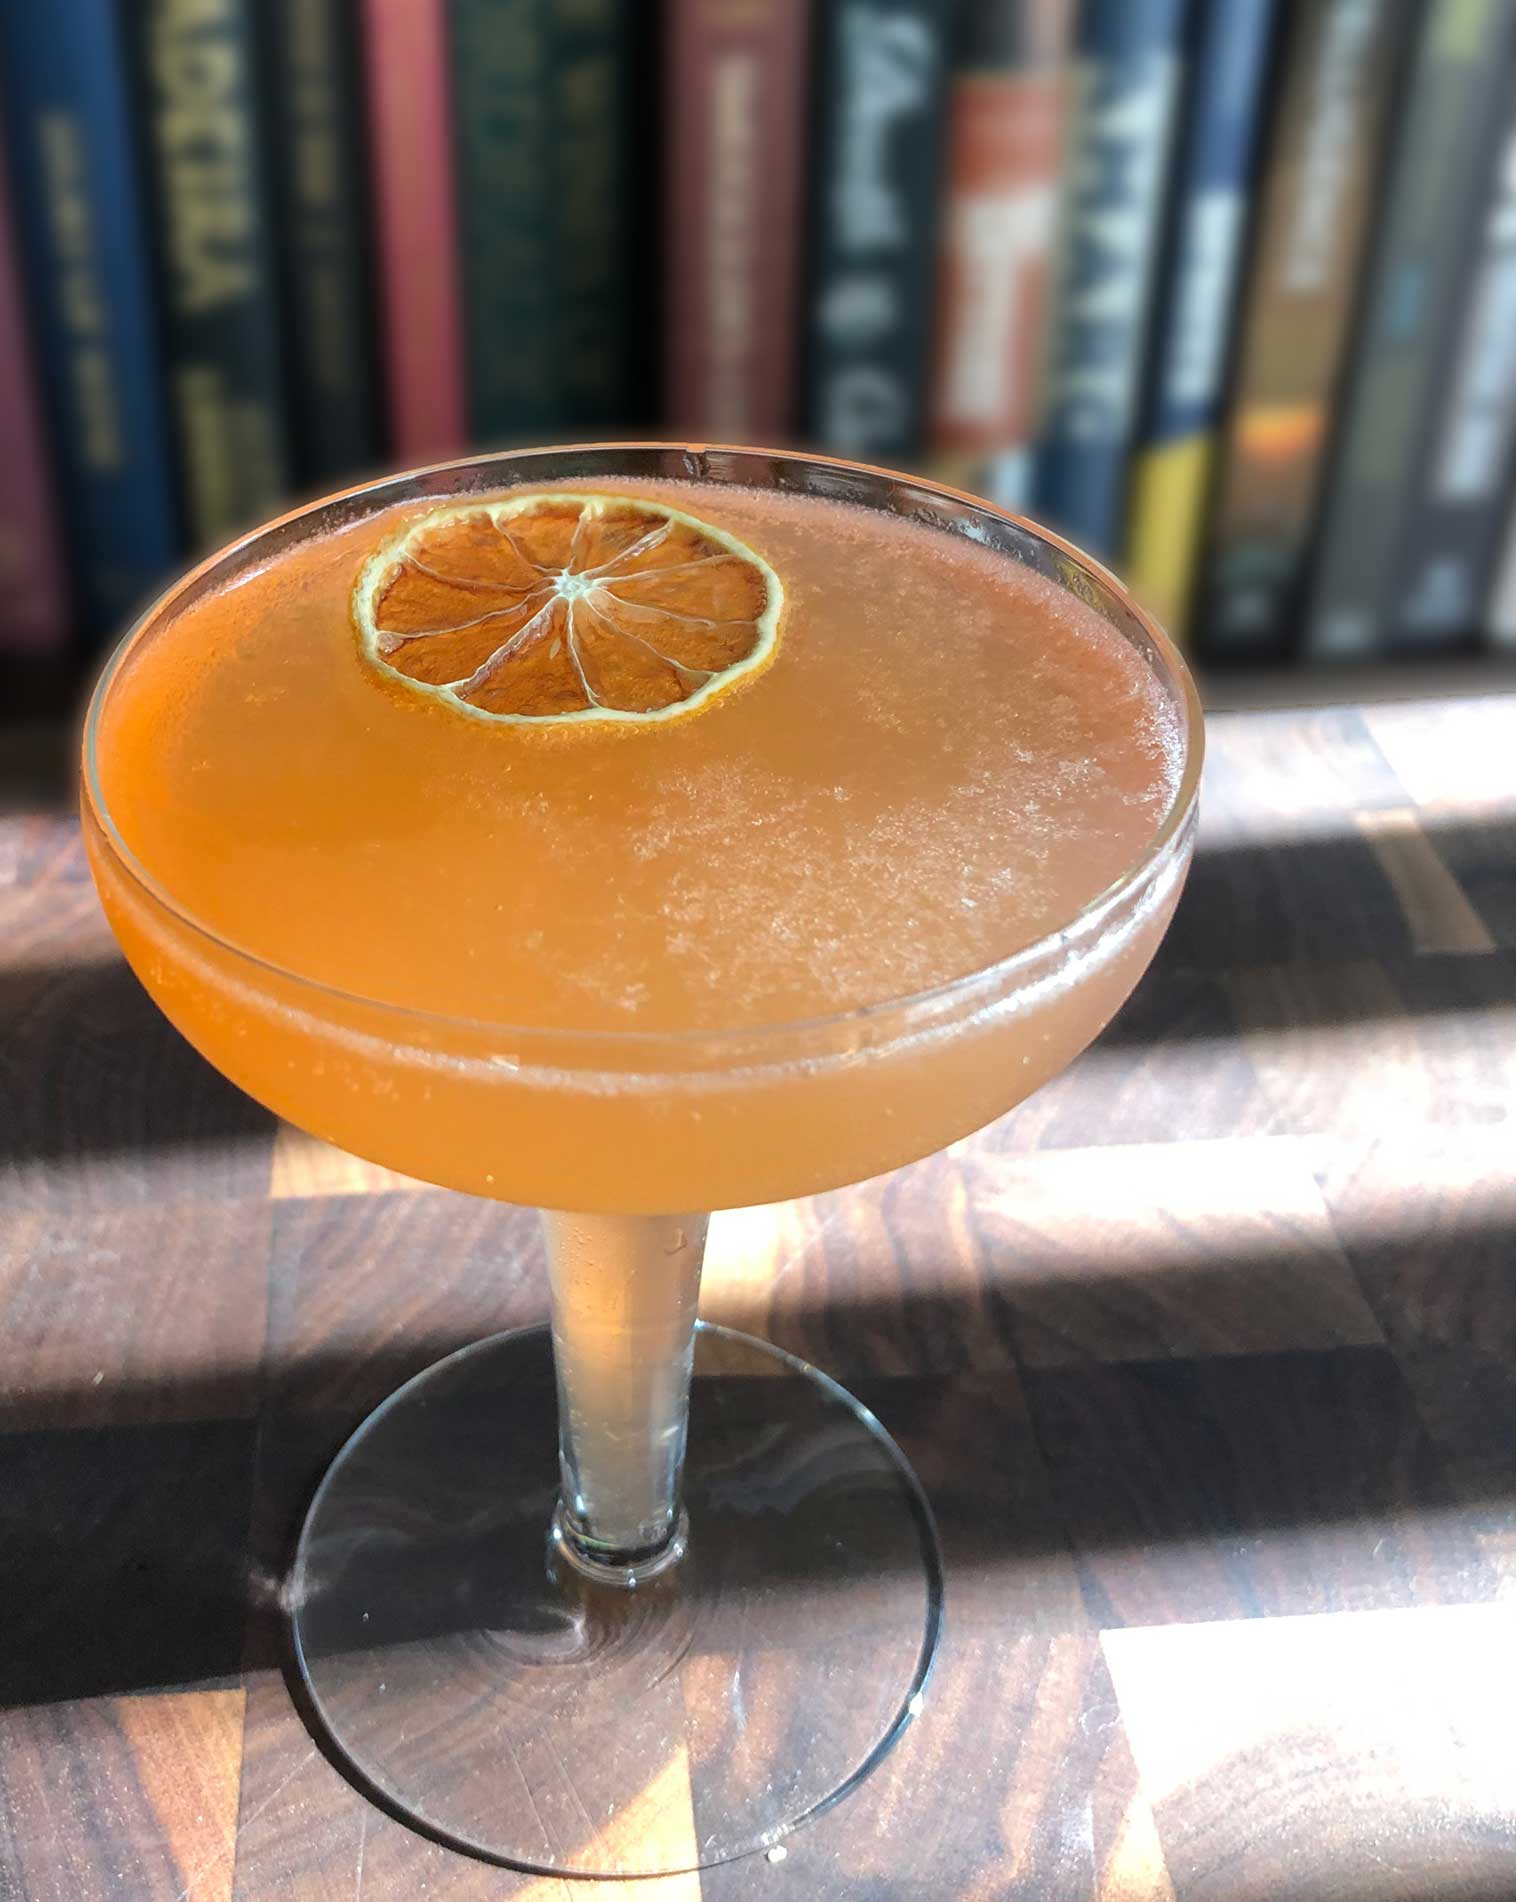 An example of the Front Porch Fizz, the mixed drink (fizz), adapted from a drink by Kellie Thorn, Empire State South, Atlanta, Georgia, featuring sparkling wine, Hayman's London Dry Gin, Aperitivo Cappelletti, watermelon syrup, and lemon juice; photo by Lee Edwards